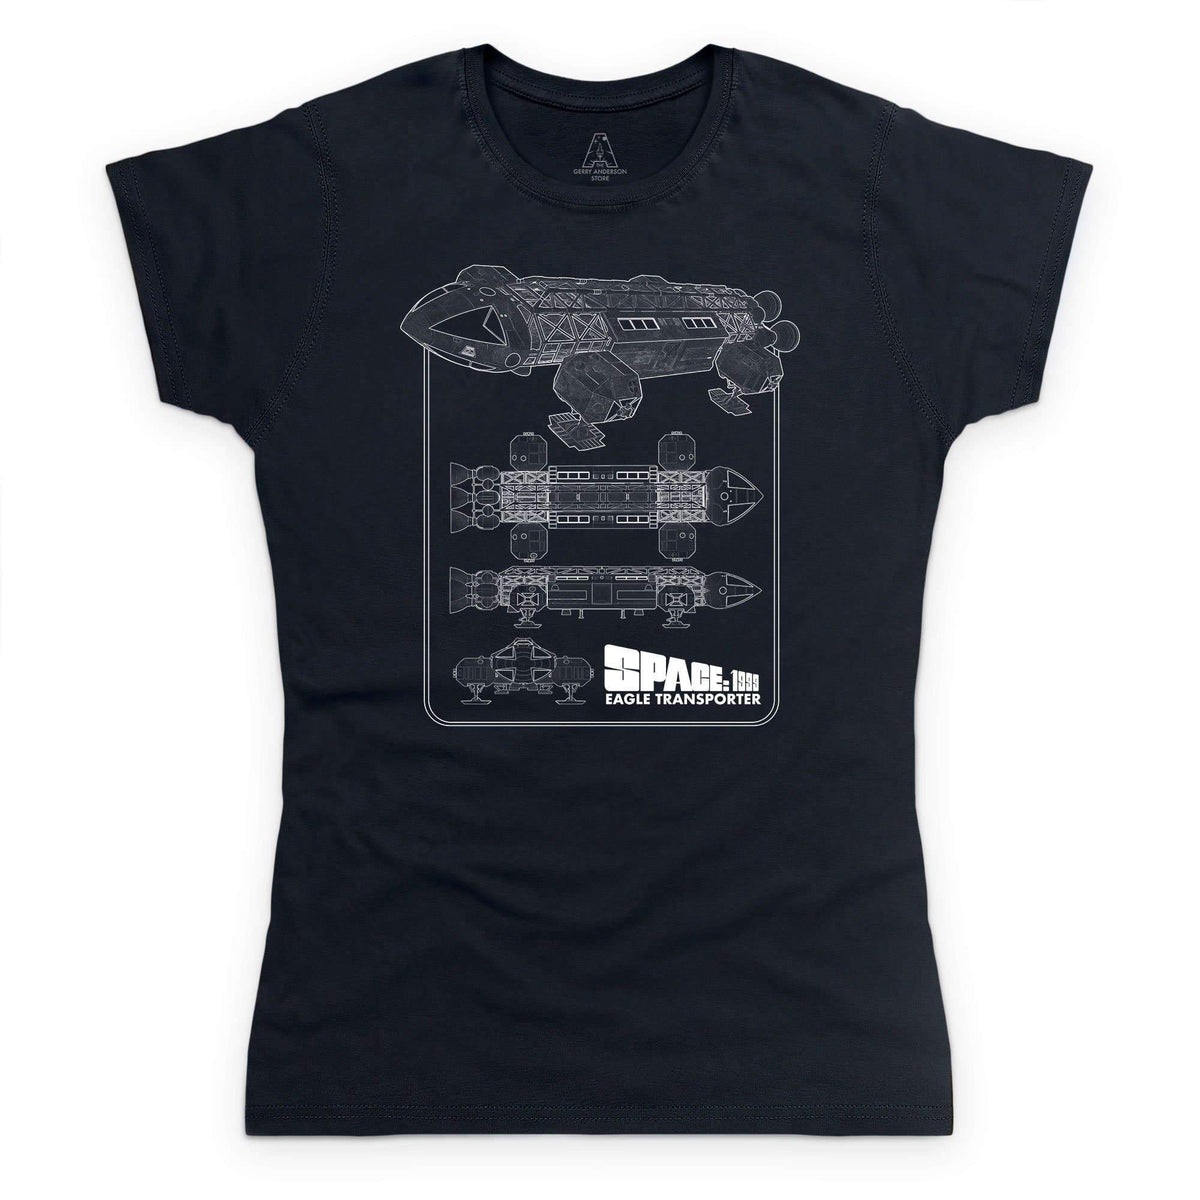 Space: 1999 Eagle Schematic Women's T-Shirt [Official & Exclusive] - The Gerry Anderson Store